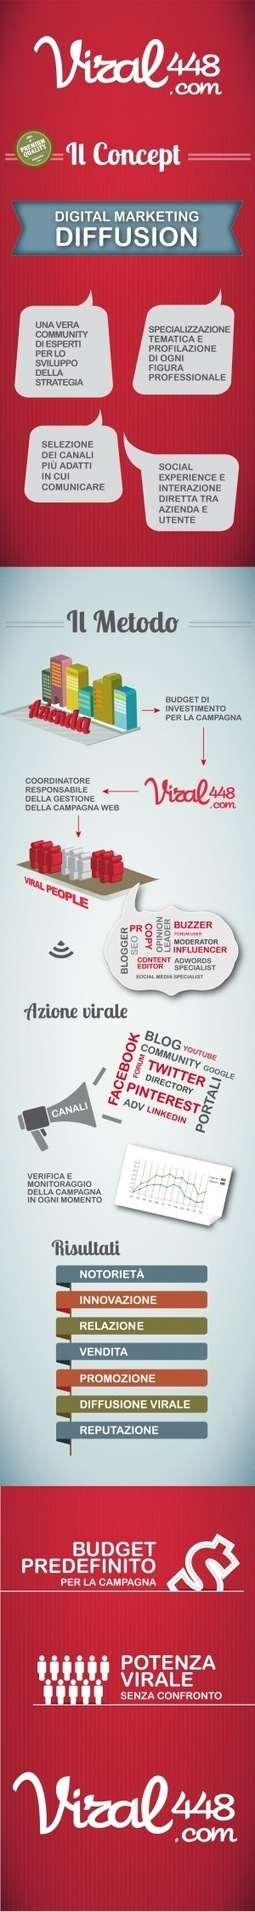 Viral448, la community dei Social Media Addicted e non solo | Social media culture | Scoop.it